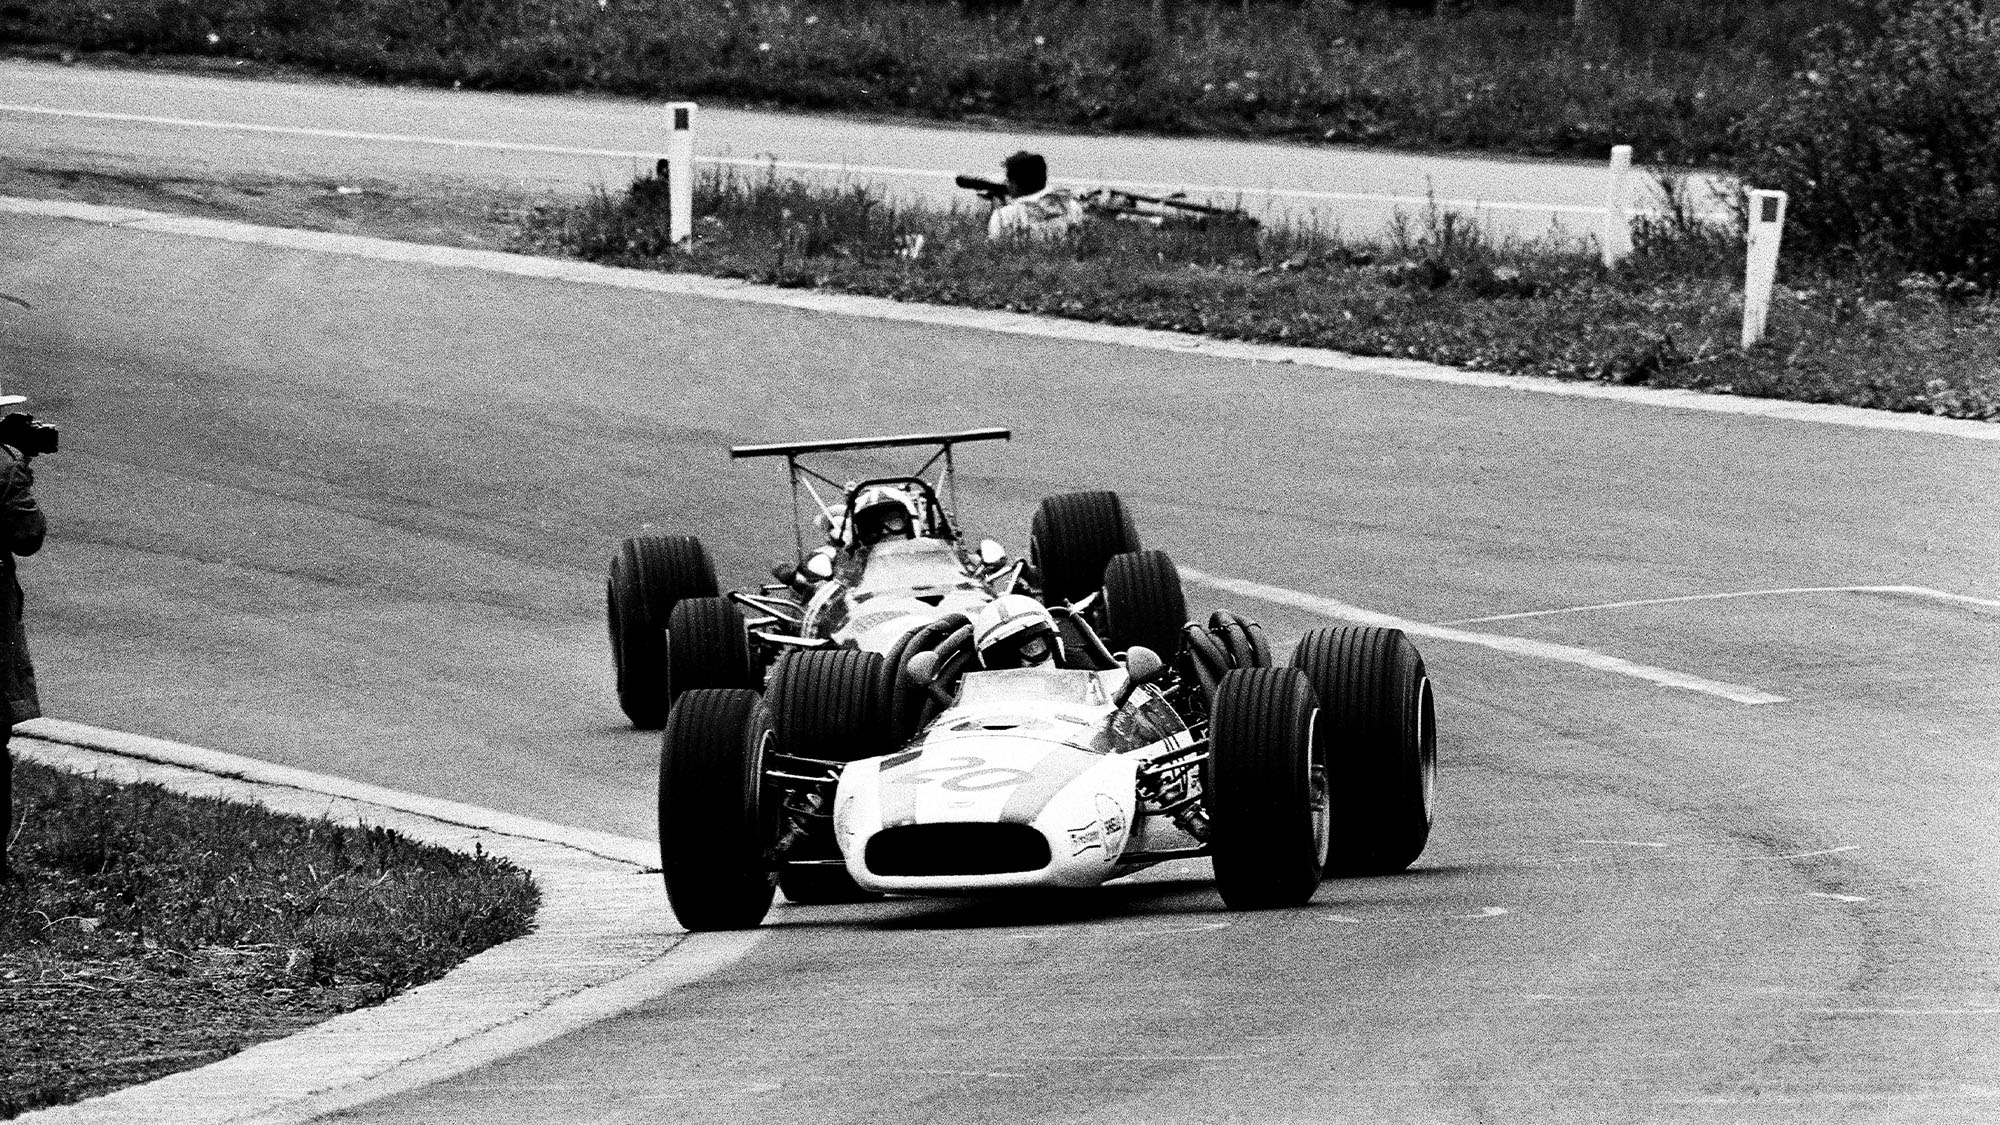 John Surtees defends at Spa Francorchamps during the 1968 F1 Belgian grand prix